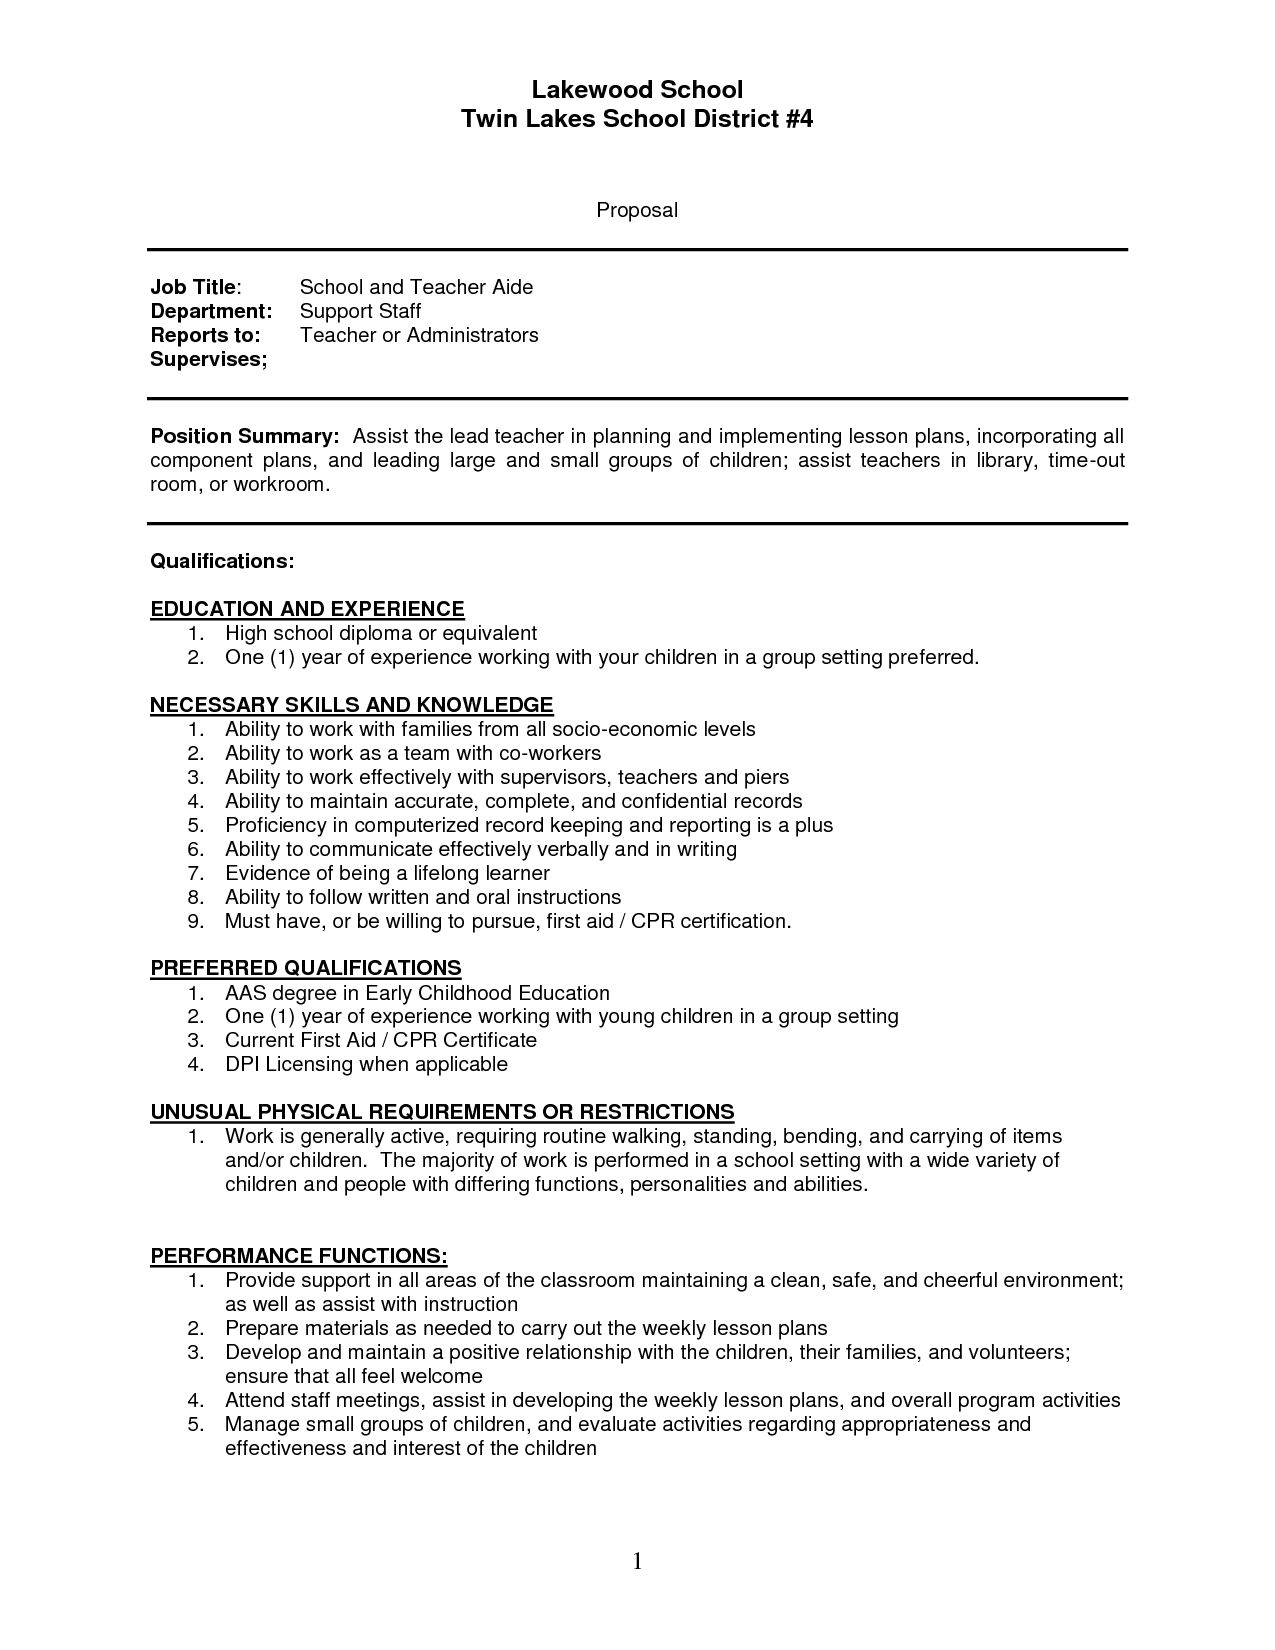 Sample Resume Teachers Aide Assistant Cover Letter Teacher Sap